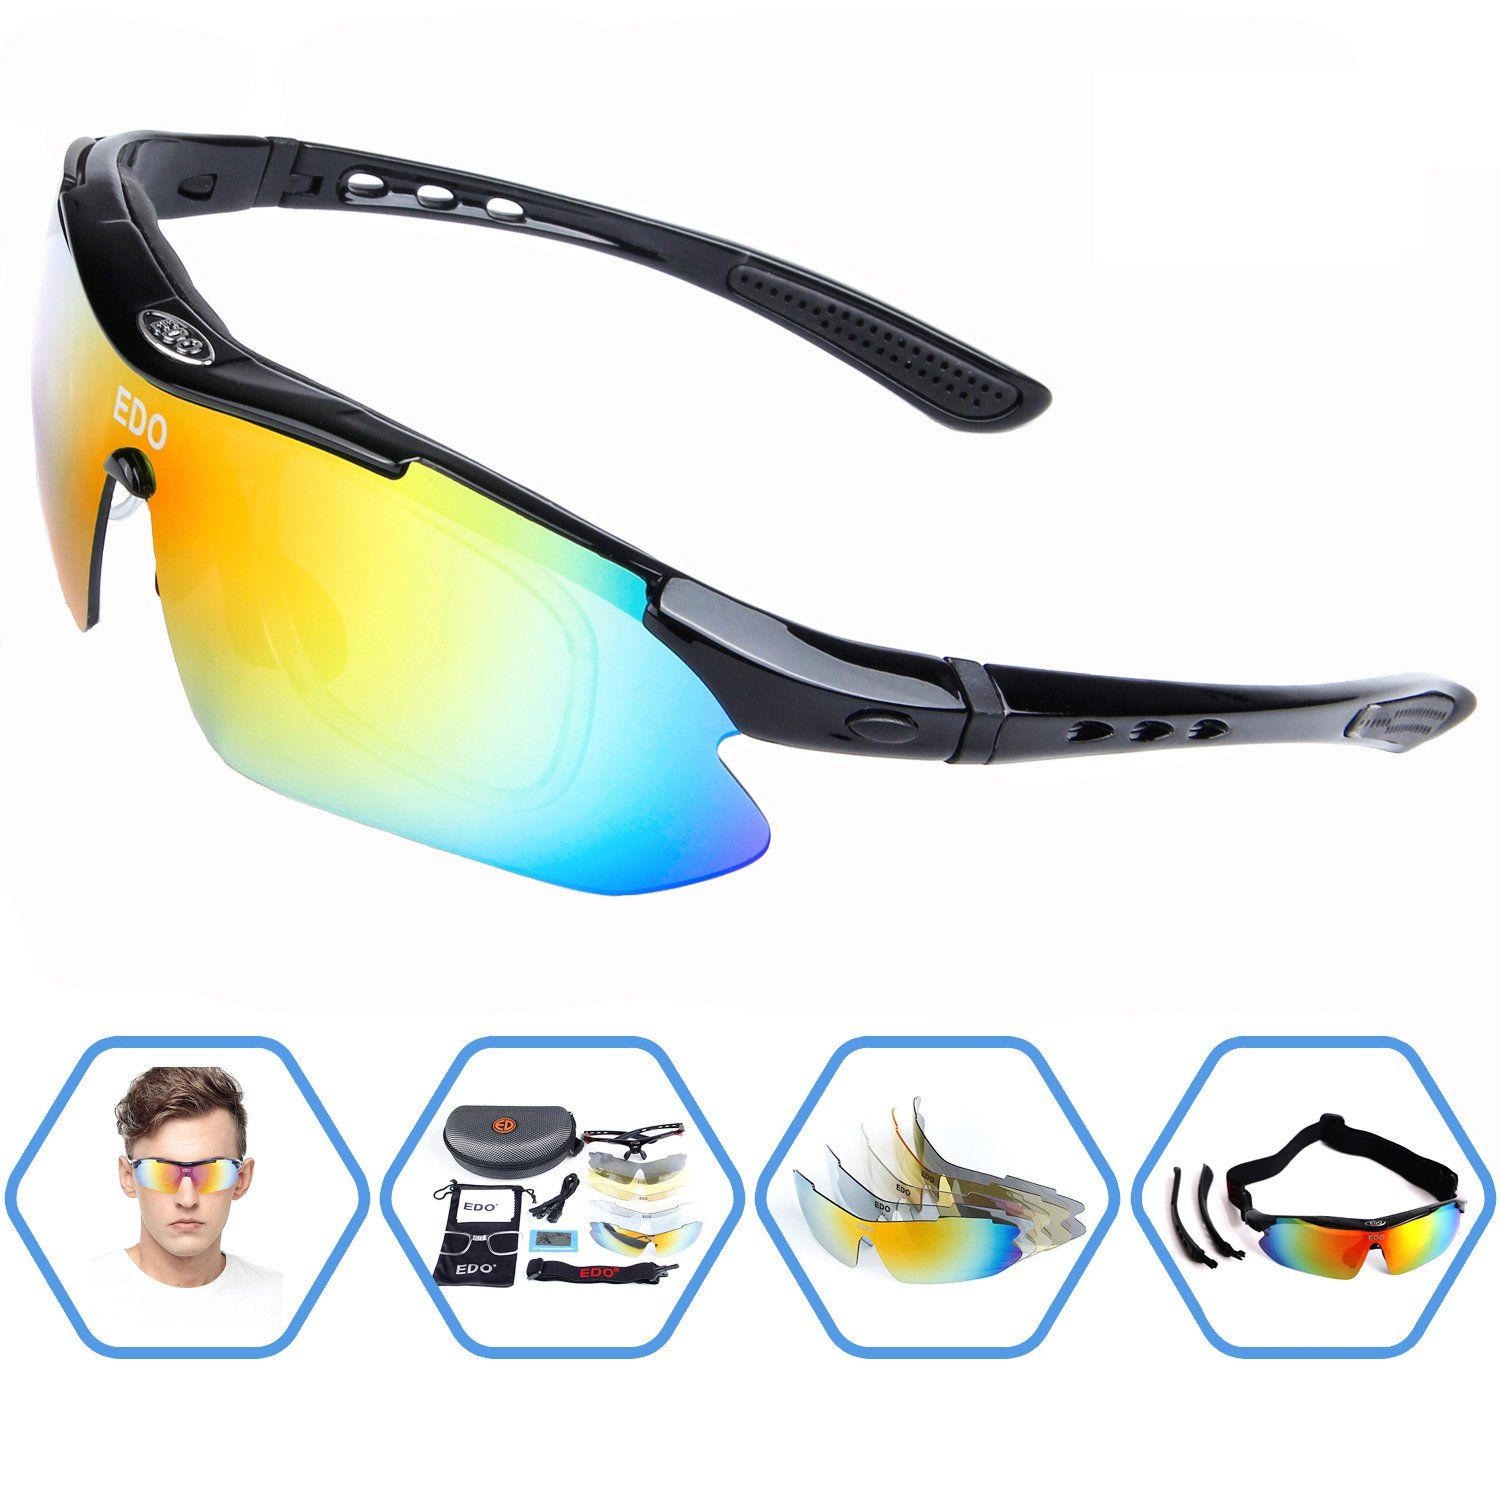 e73fe258fbc EDO Polarized Sports Sunglasses for Men Women Cycling Running Driving  Fishing Golf Baseball Glasses with 5 Interchangeable Lenses Tr90  Unbreakable Frame ...